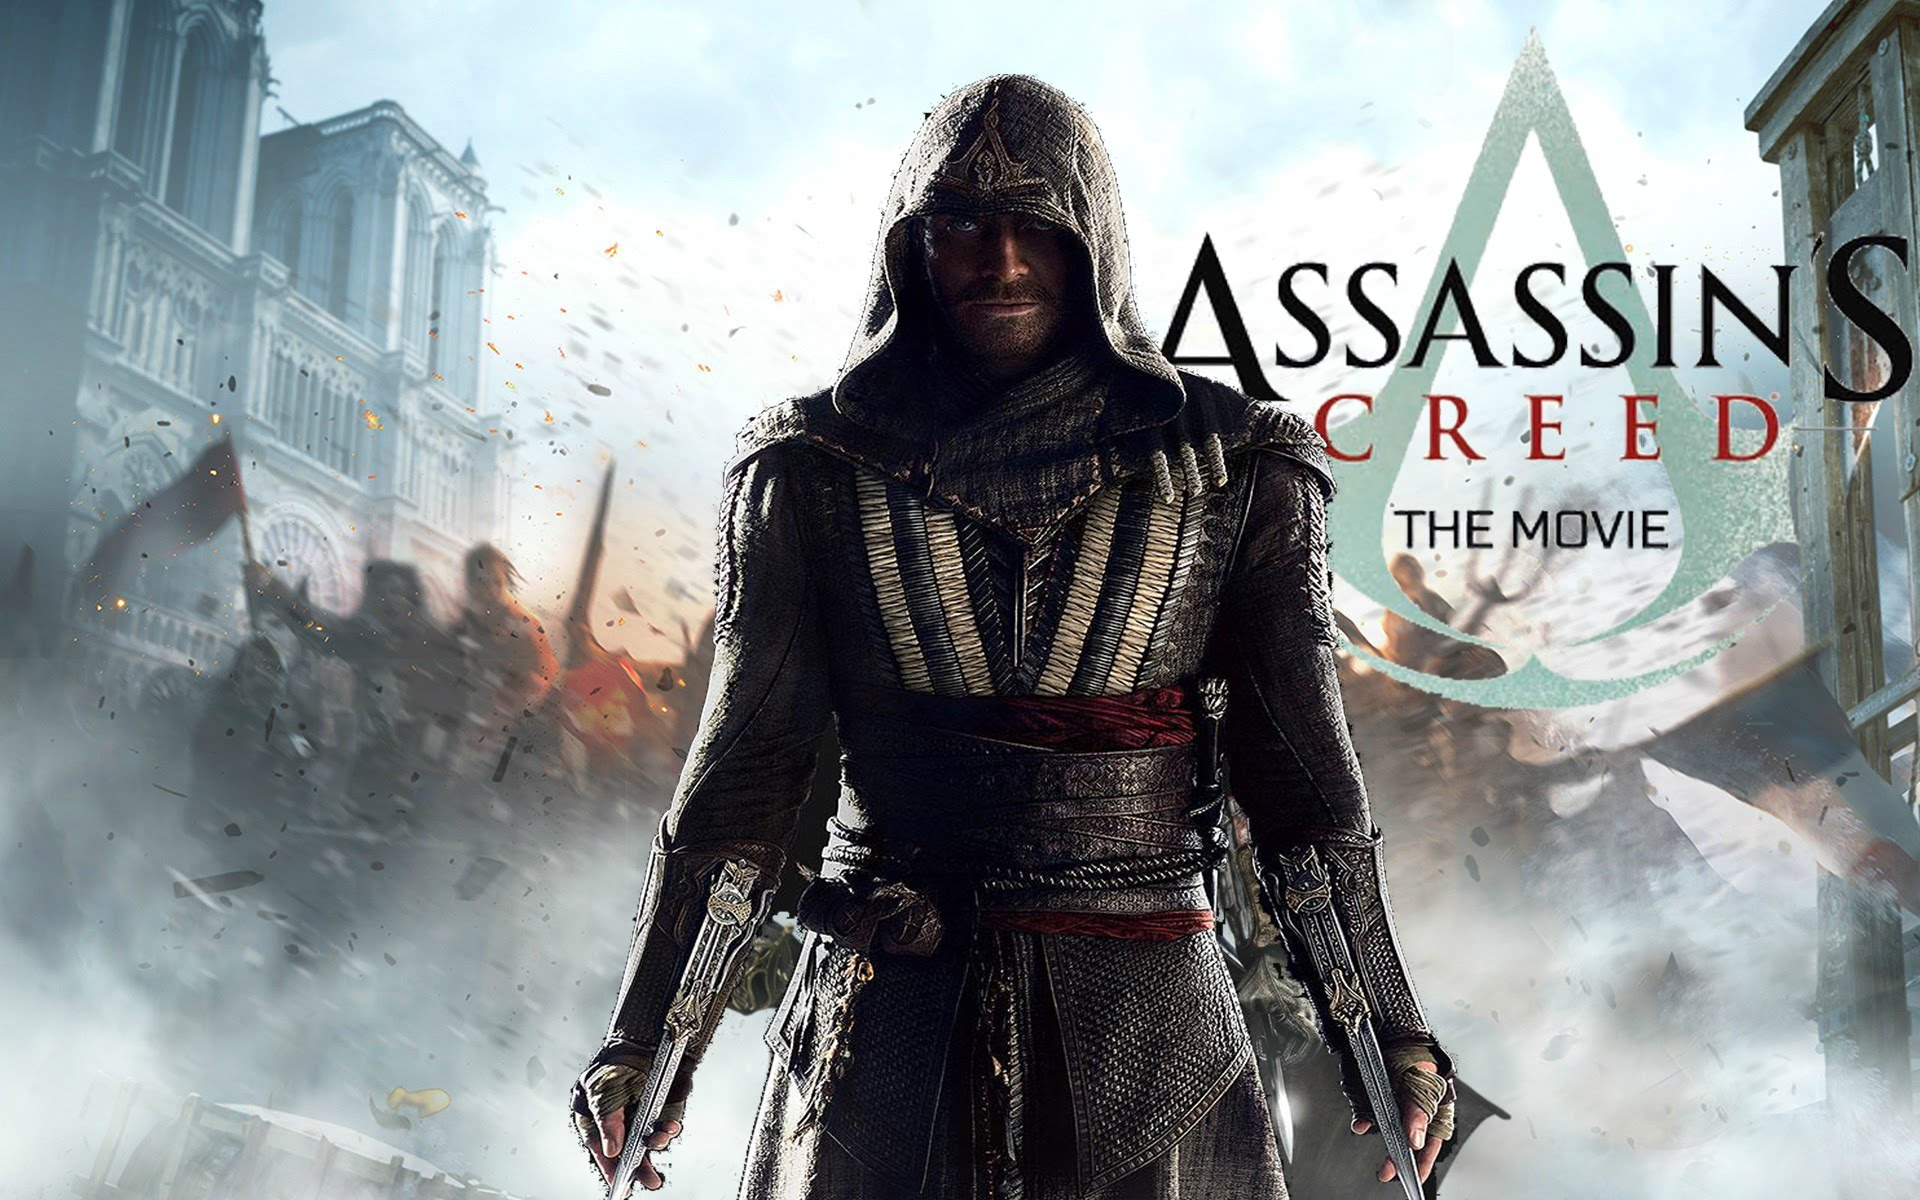 MIÉRCOLES 26 DE ABRIL, 18:00 HRS. ASSASSIN'S CREED